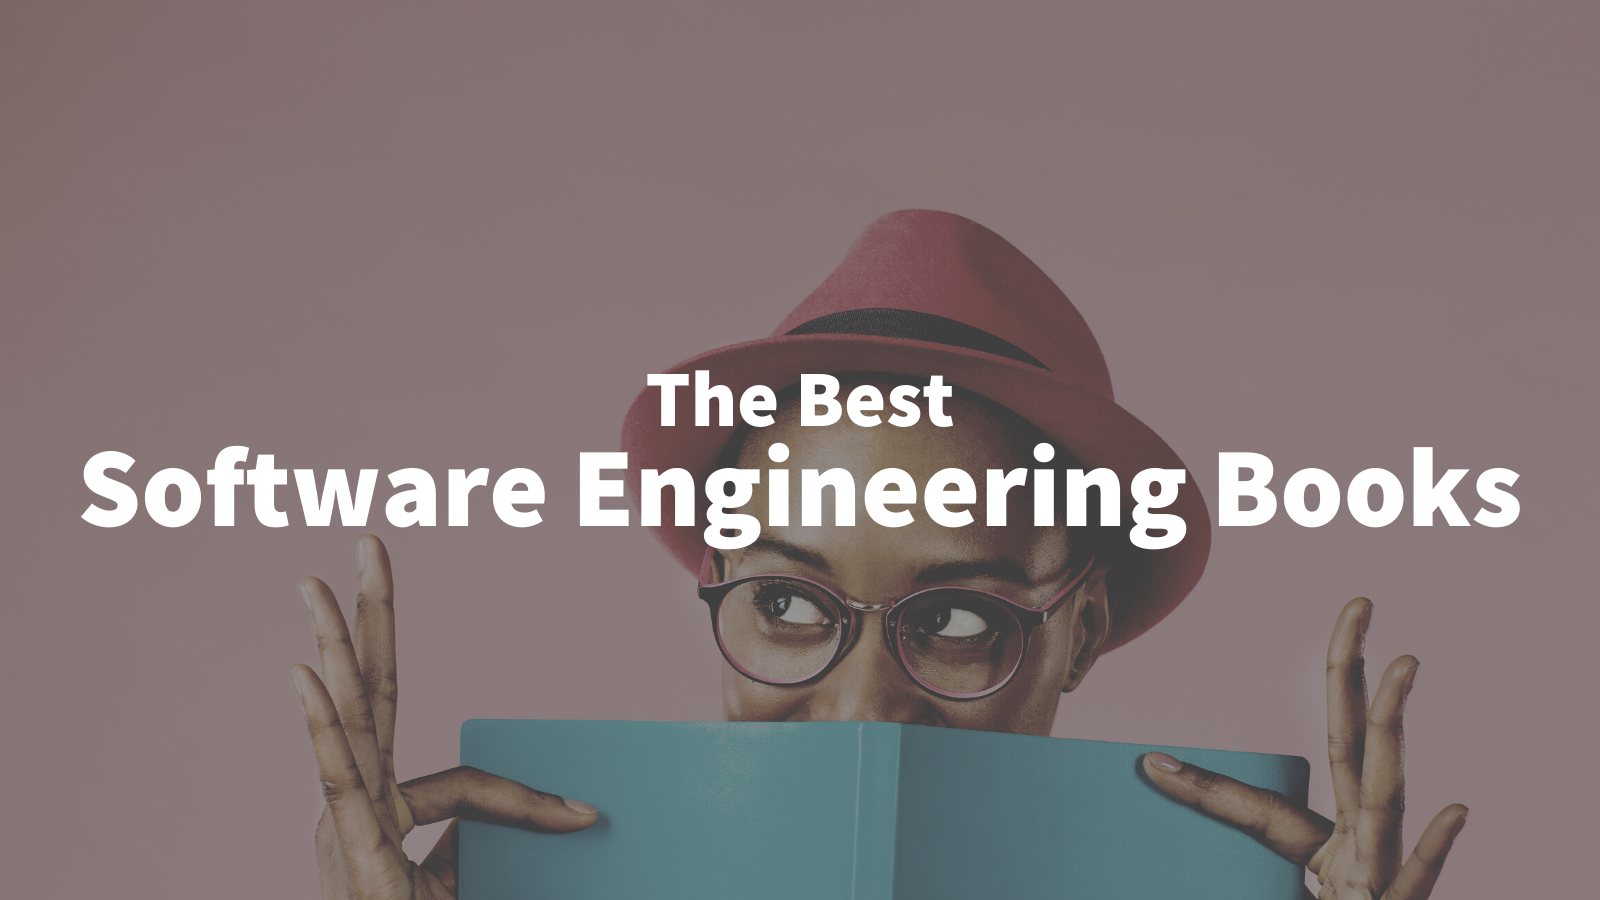 The Best Software Engineering Books